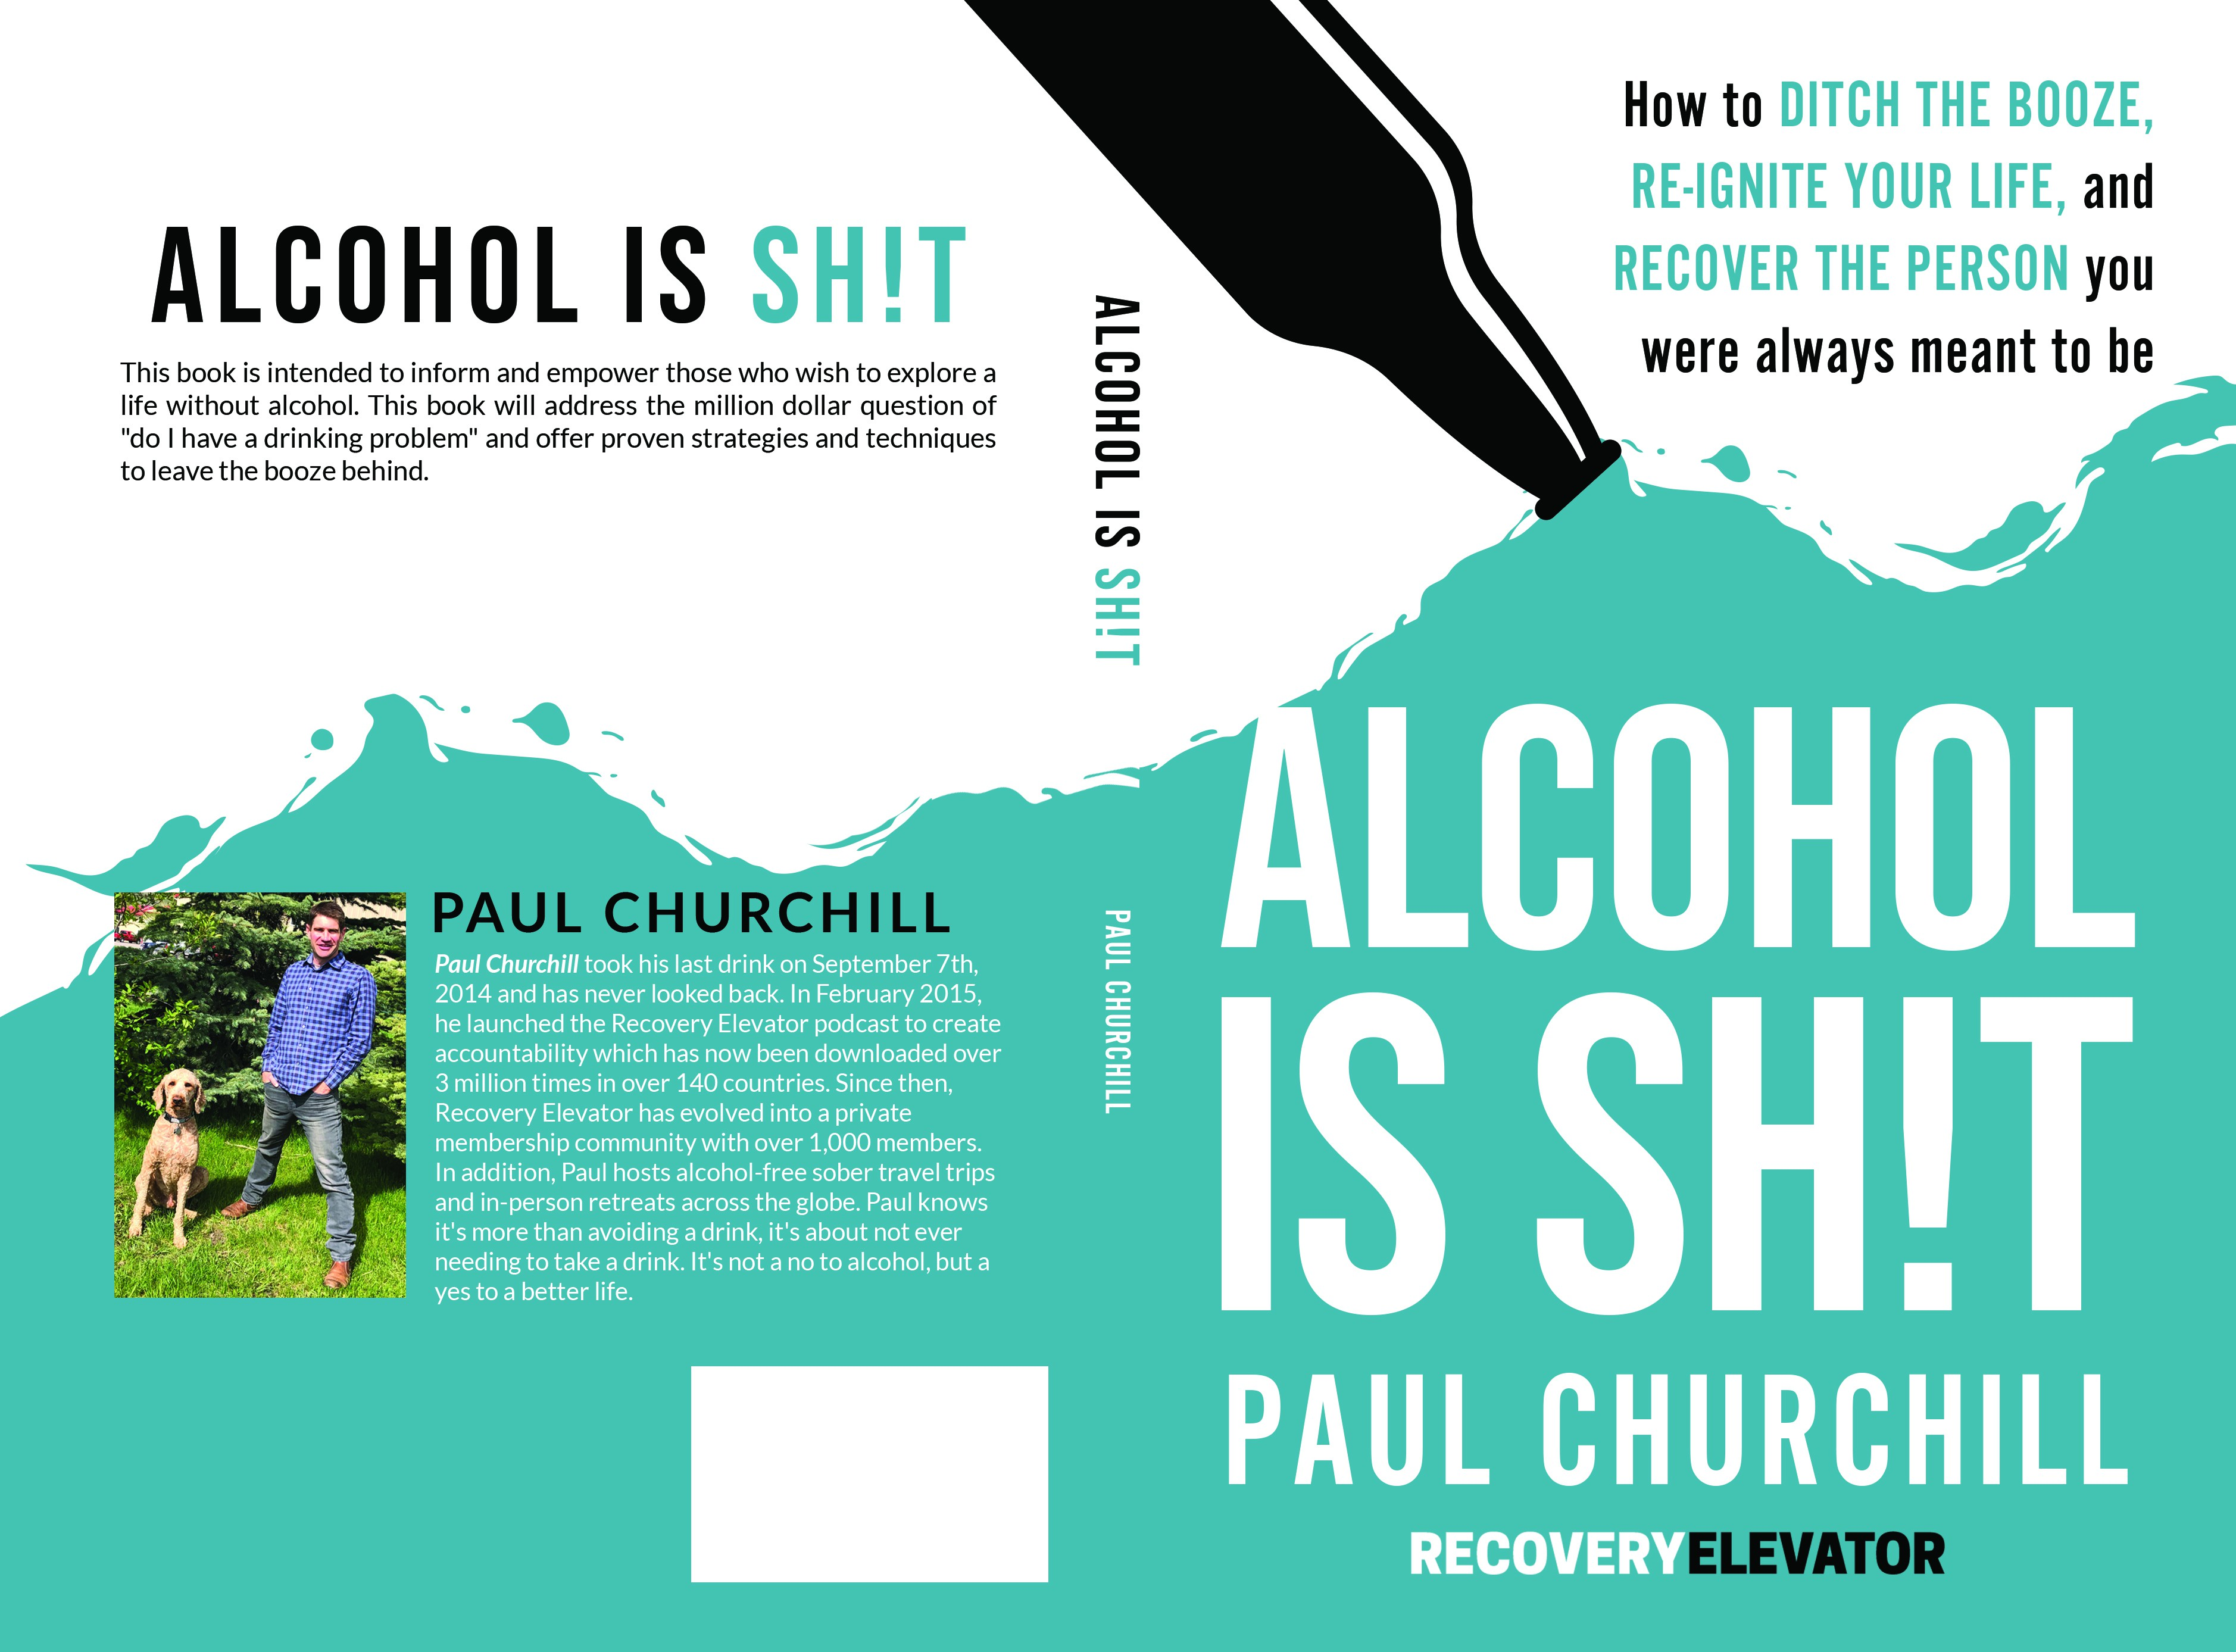 Alcohol is SH!T... Help readers who struggle with alcohol, ditch the booze!